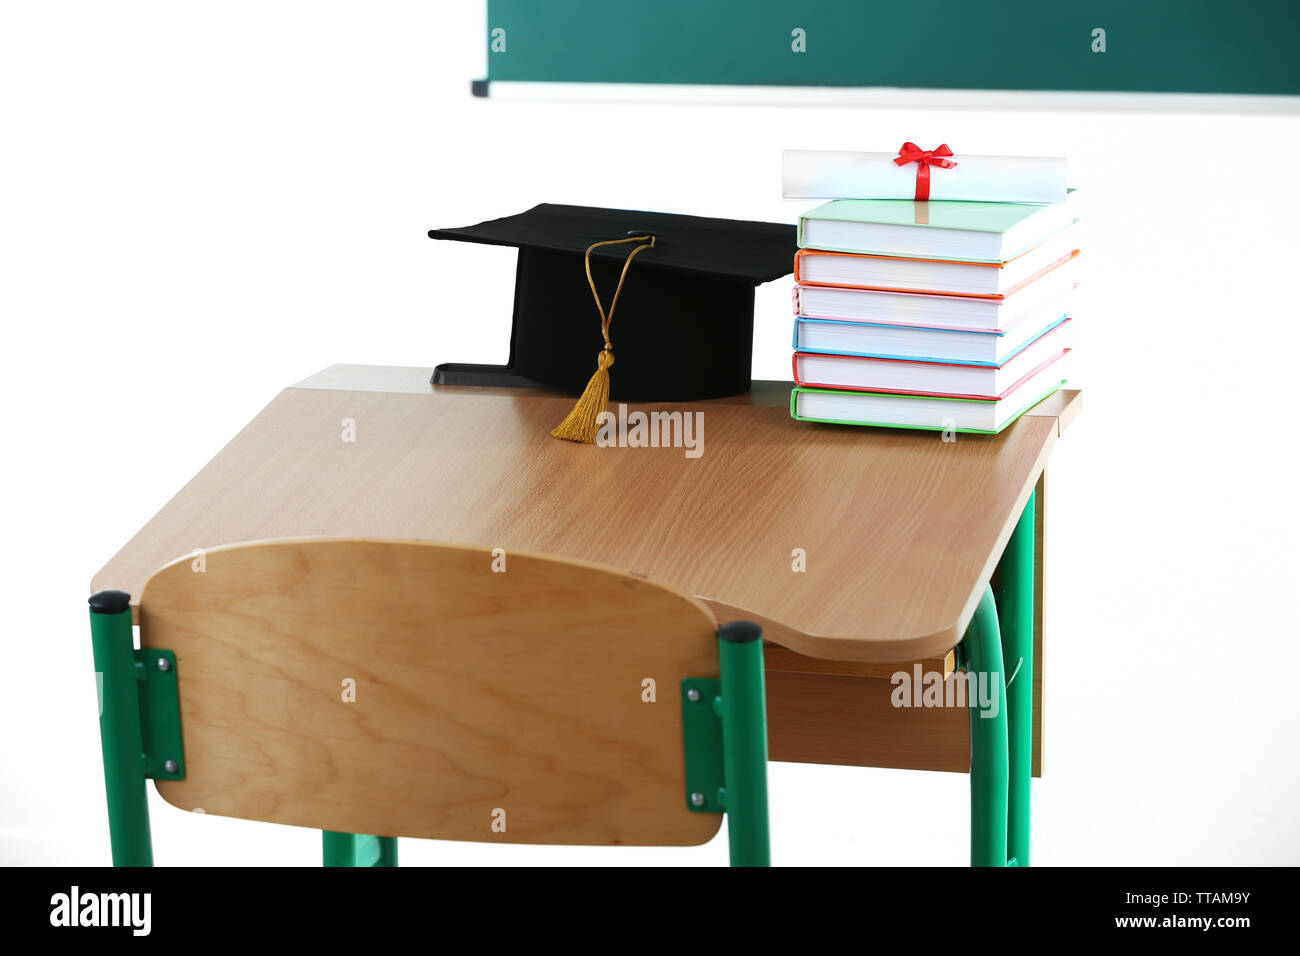 School desk with master hat, stack of books and diploma in classroom - Stock Image